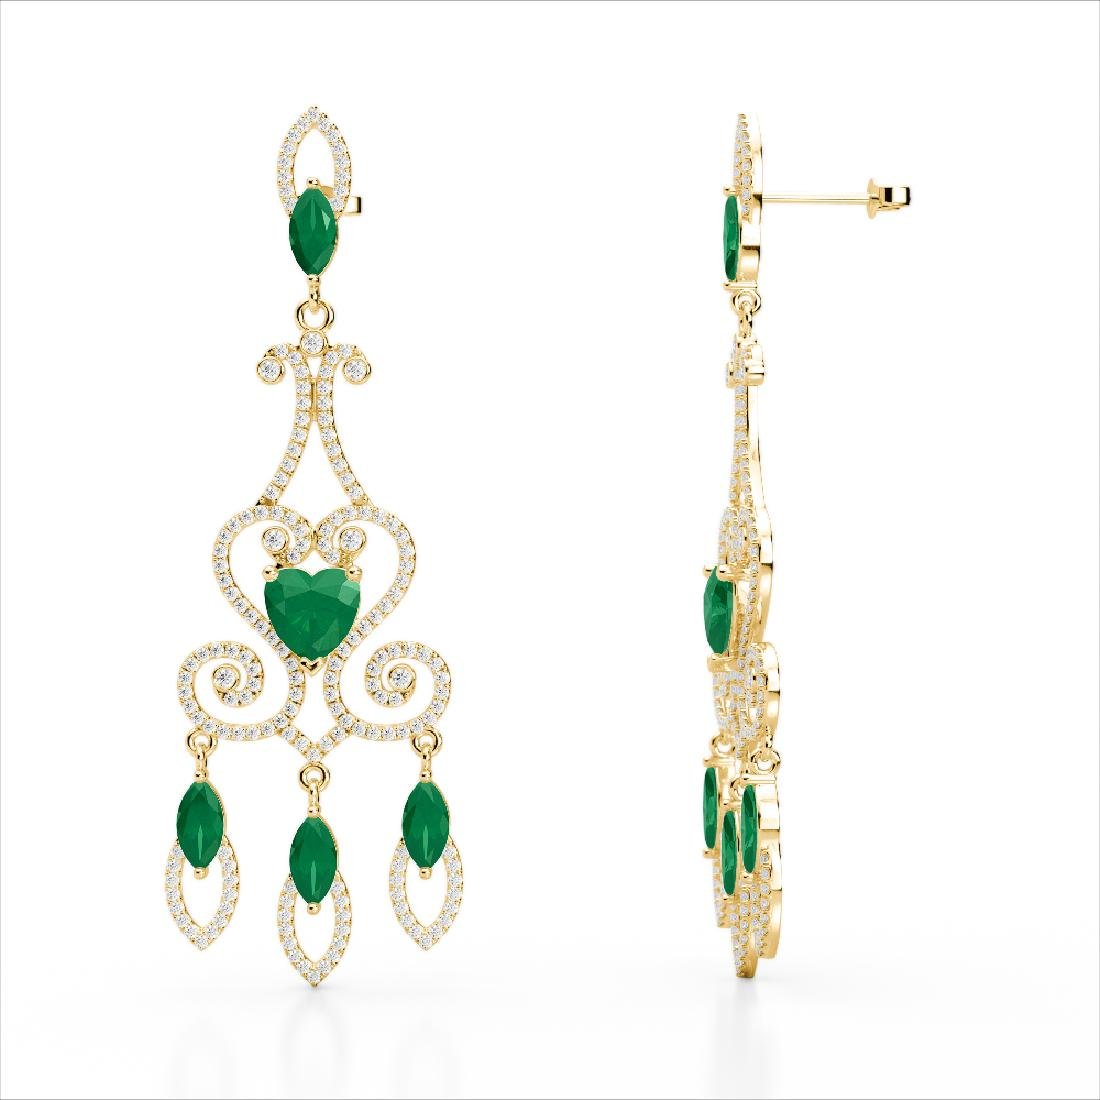 11 CTW Emerald & Micro Pave VS/SI Diamond Earrings 14K - 3